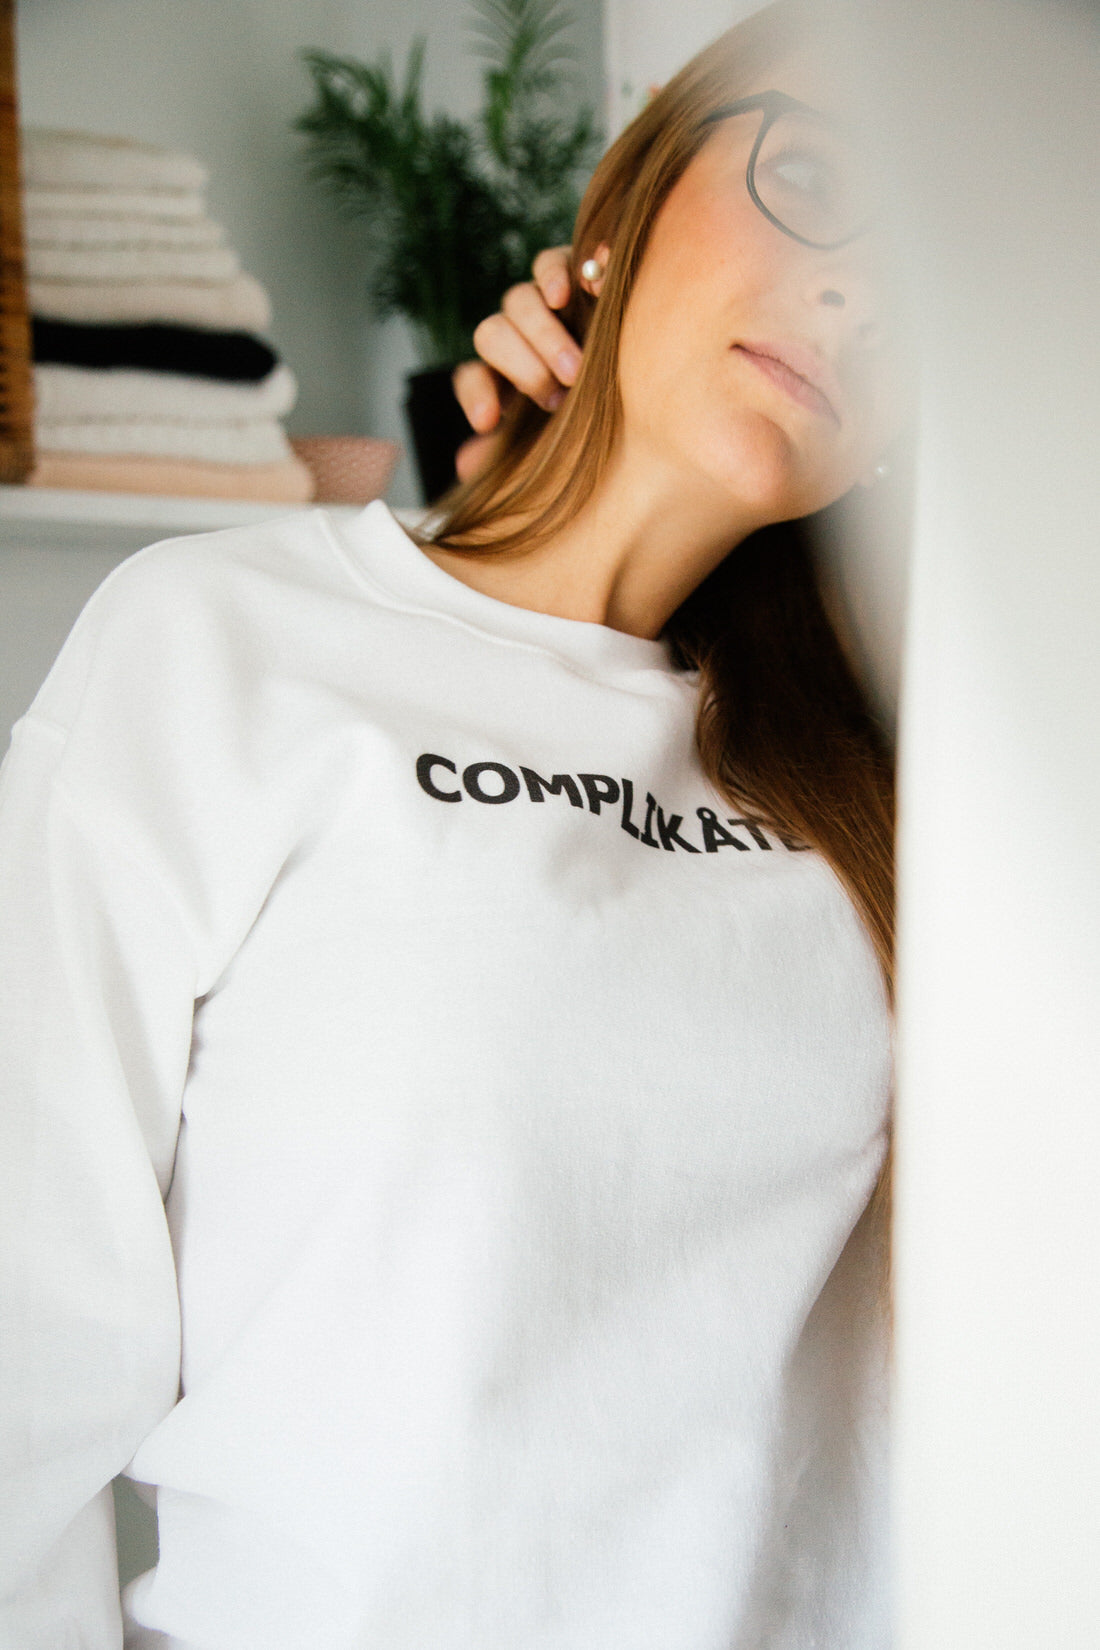 Complikated Sweatshirt in White